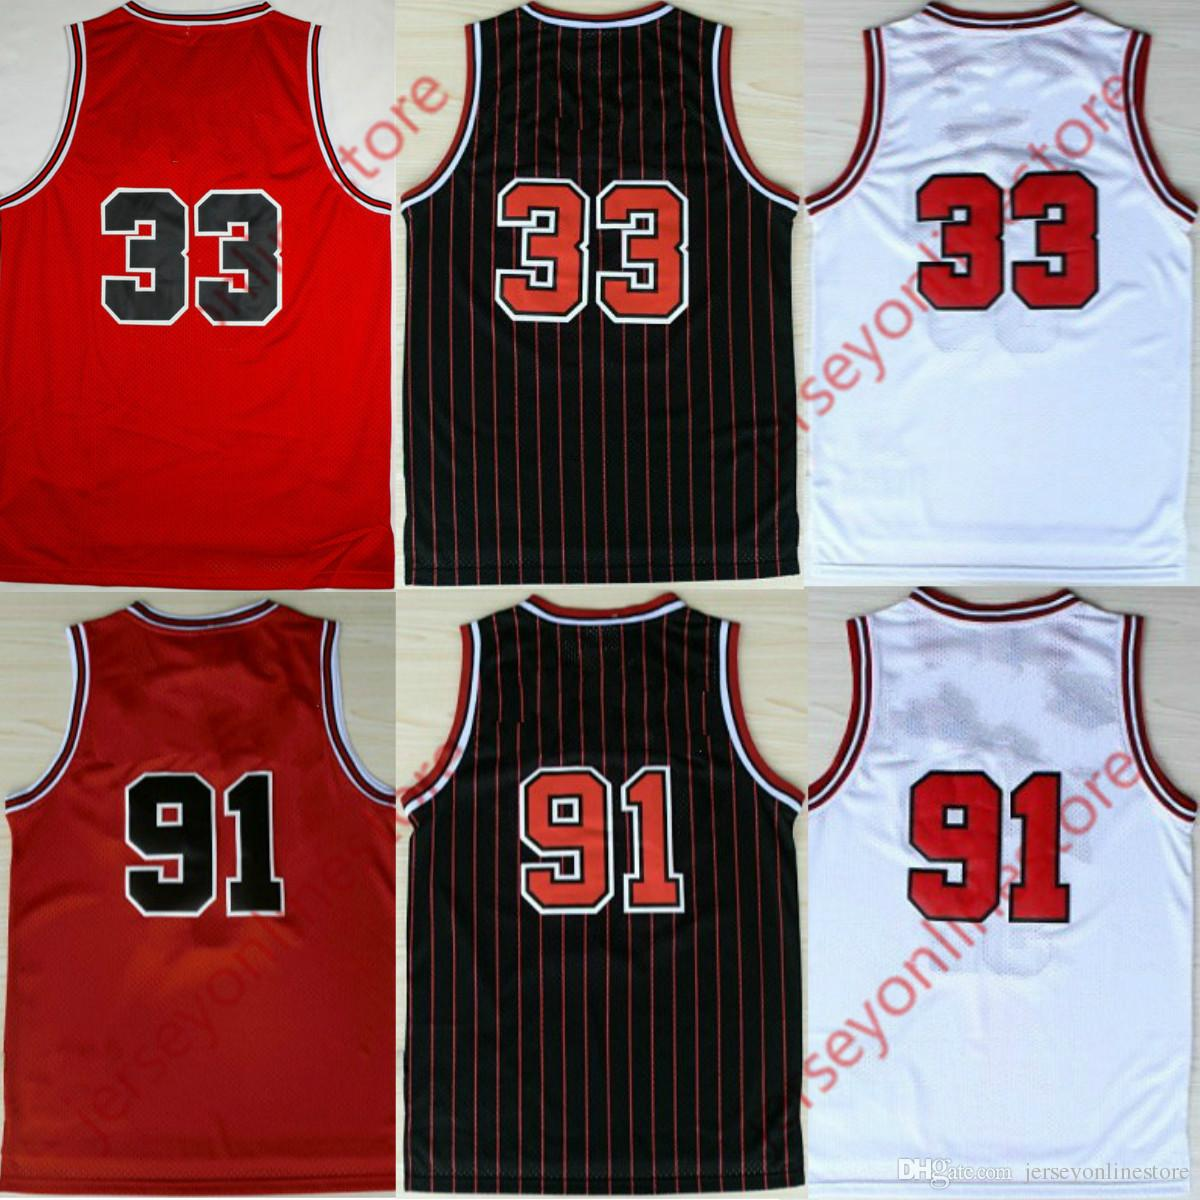 64fd2deae ... best price 2018 top quality cheap mens retro 33 pippen 91 rodman jersey  white red black